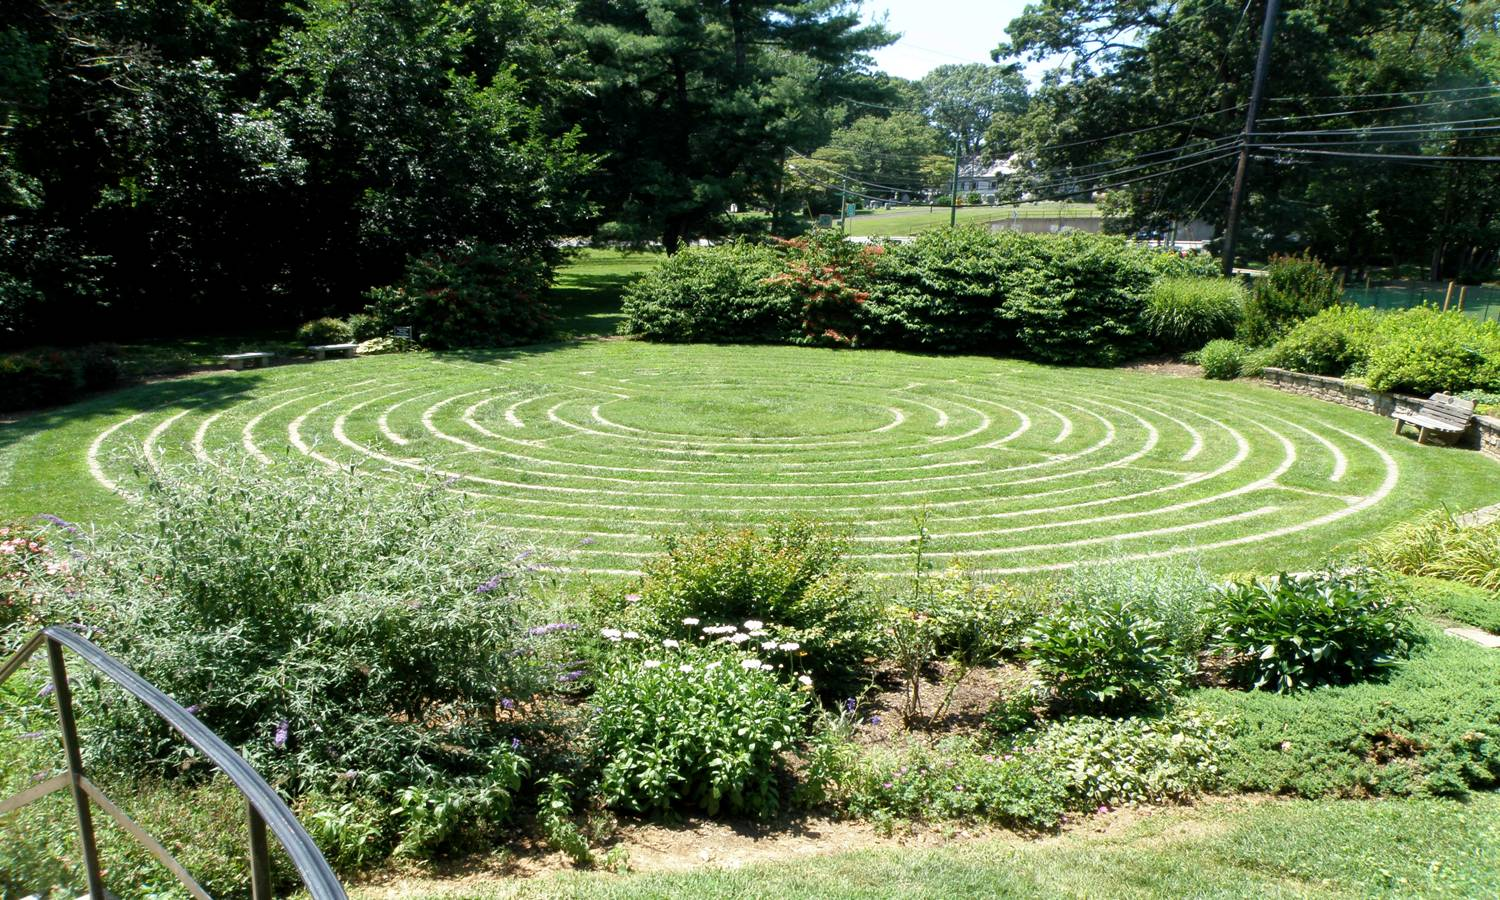 St. Luke's Episcopal Church Labyrinth